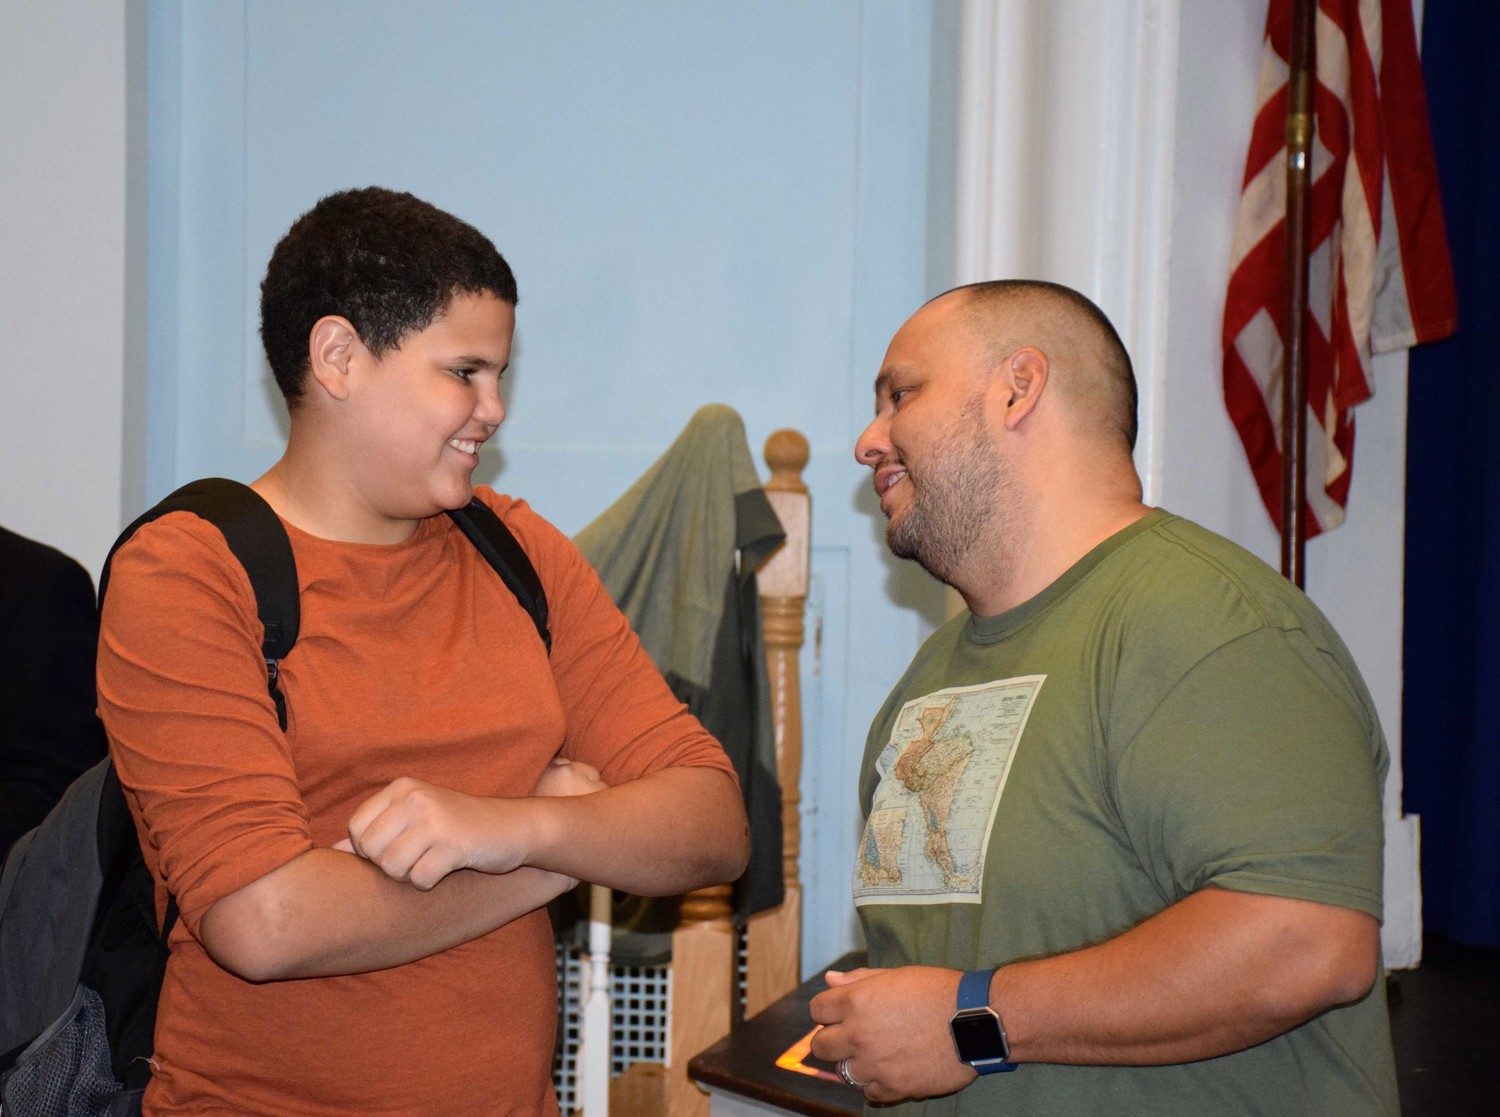 Seventh-grader Edward Abreu Lopez thanked Argueta after his speech.